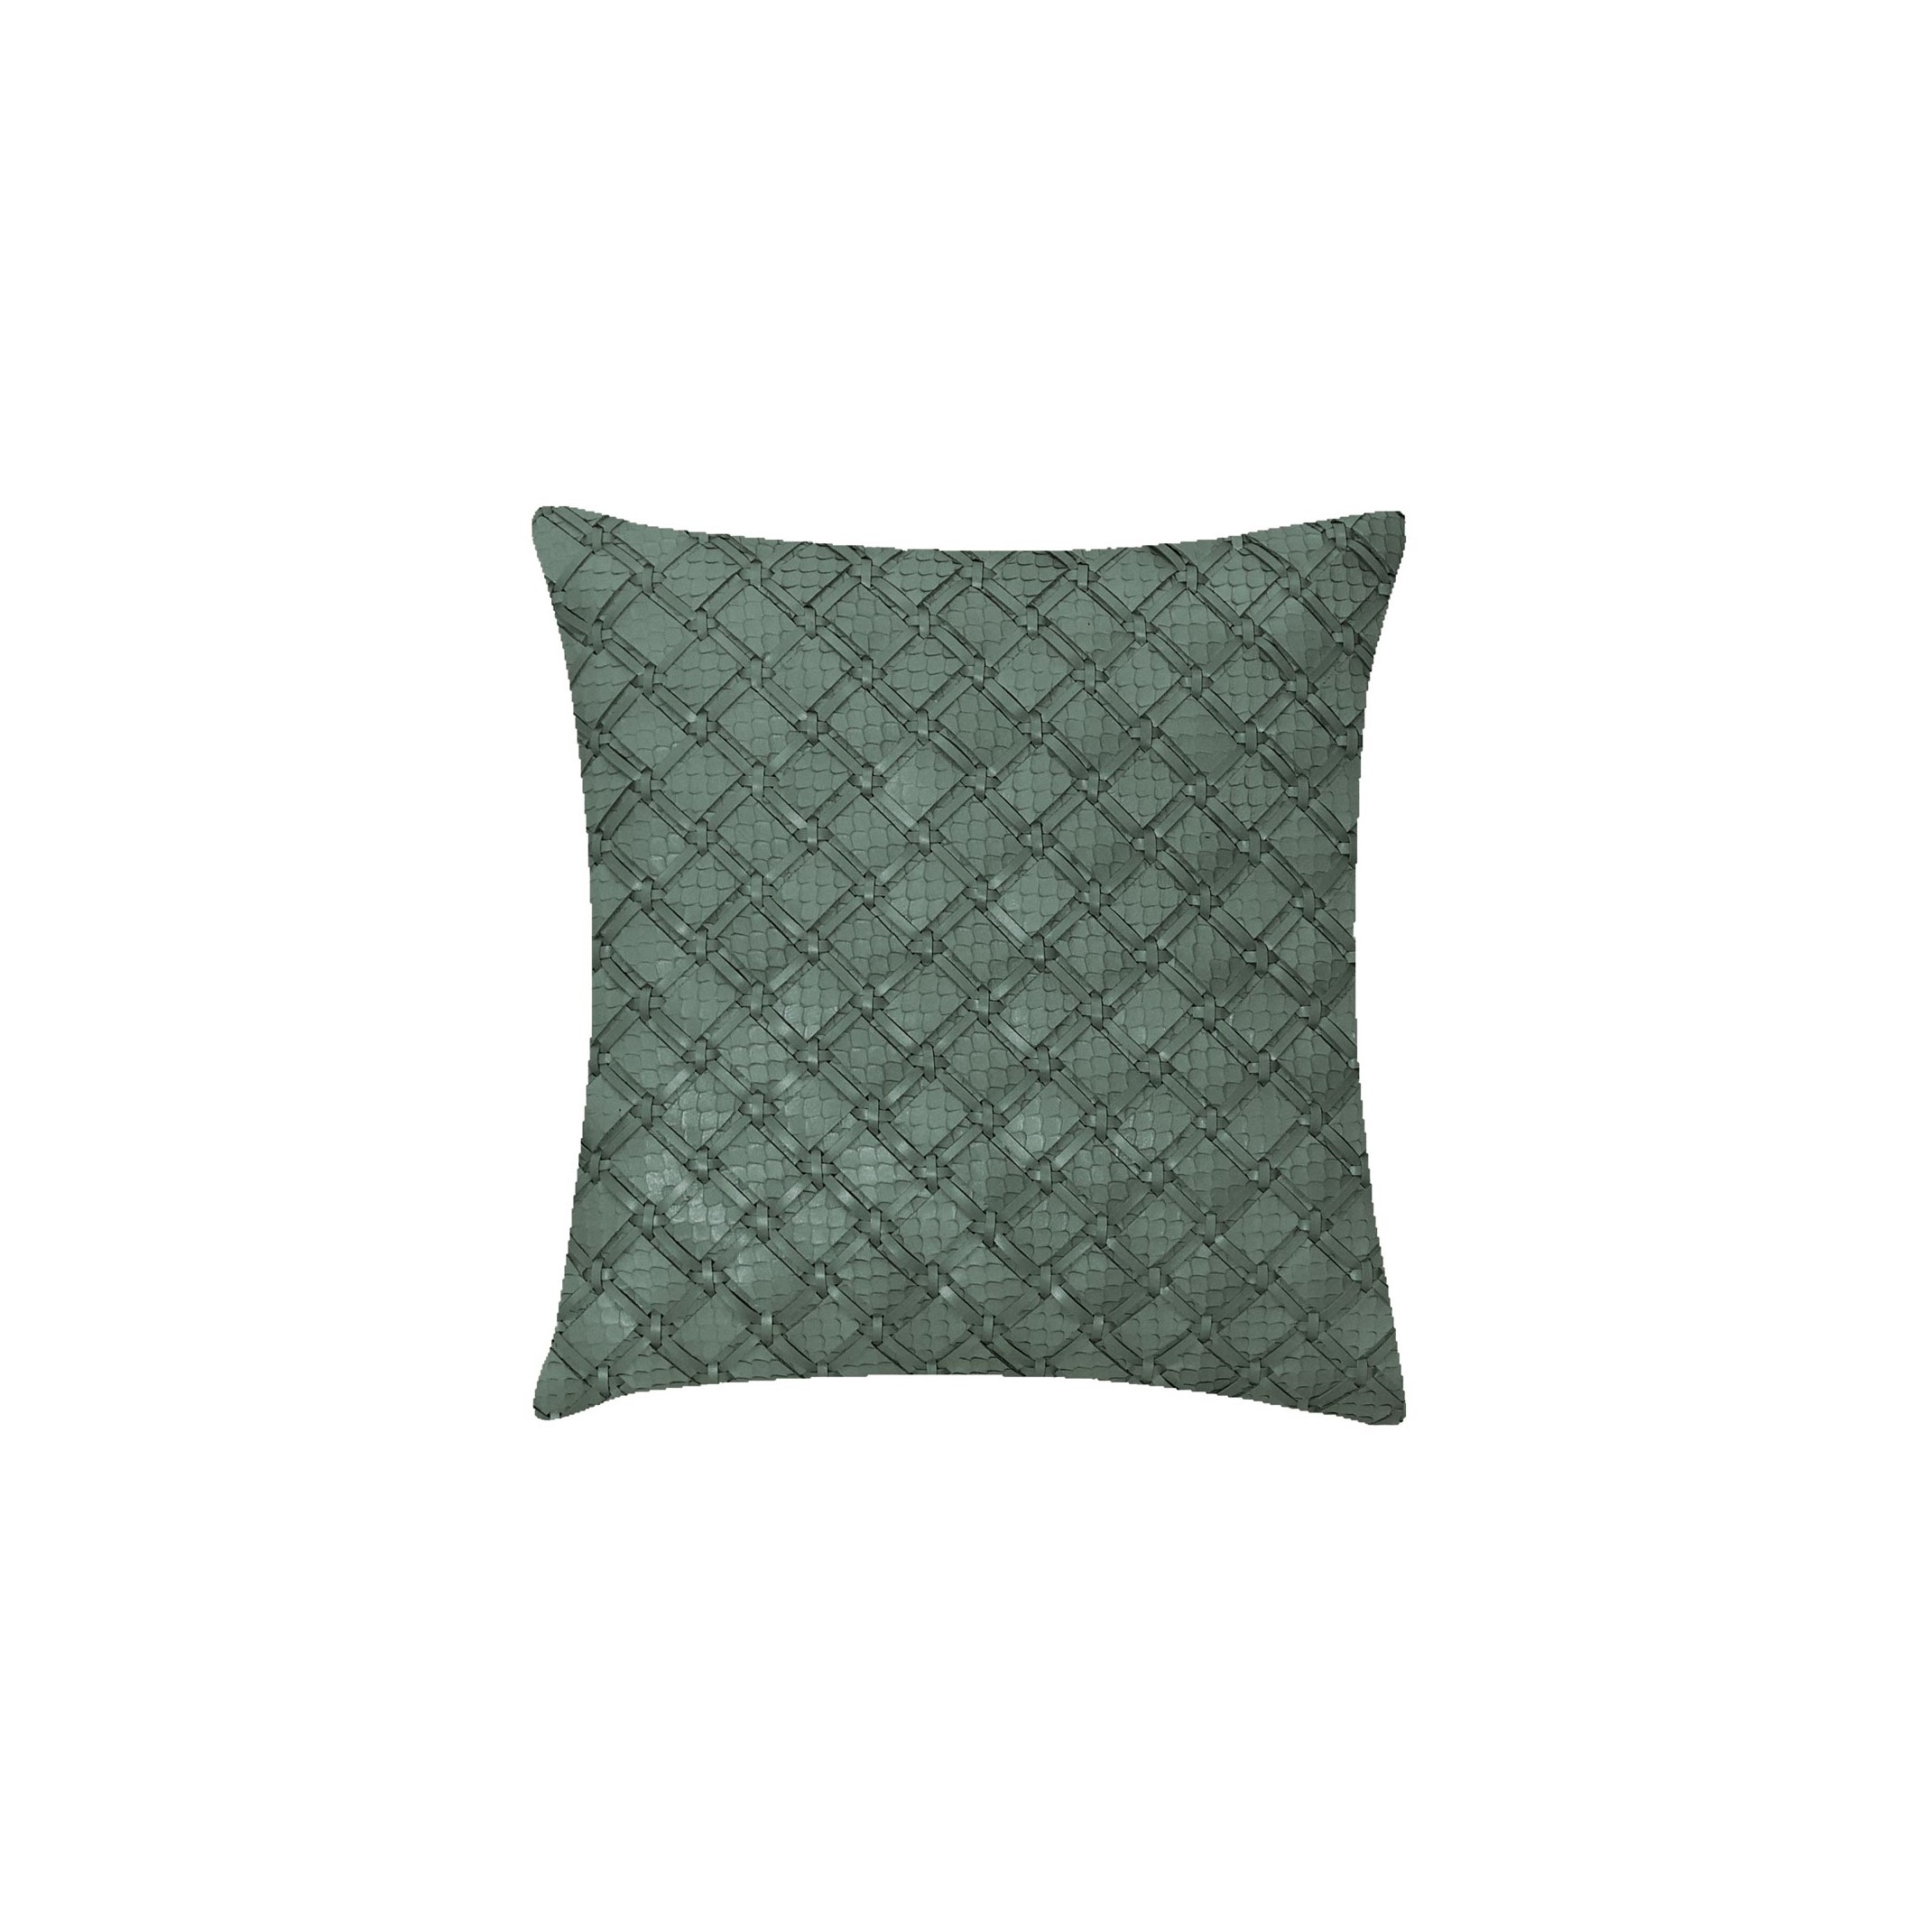 Geometrico Pescado Woven Leather Cushion Medium - The Medium Geometrico Leather Cushion is designed to complement an ambient setting, with a natural and sophisticated feeling. Our woven handmade leather cushions are specially manufactured in Brazil using an exclusive treated leather that brings a soft touch to every single piece. Cushion pads can be customised in a range of ethically sourced feathers, eco-friendly wool and allergy-friendly fibres. Our fillings are sourced for their superior quality and properties to make only the finest quality cushion pads.  Elisa Atheniense Home Cushions are sold in pairs only. Bespoke sizes are also available under project request as well as colours.  | Matter of Stuff